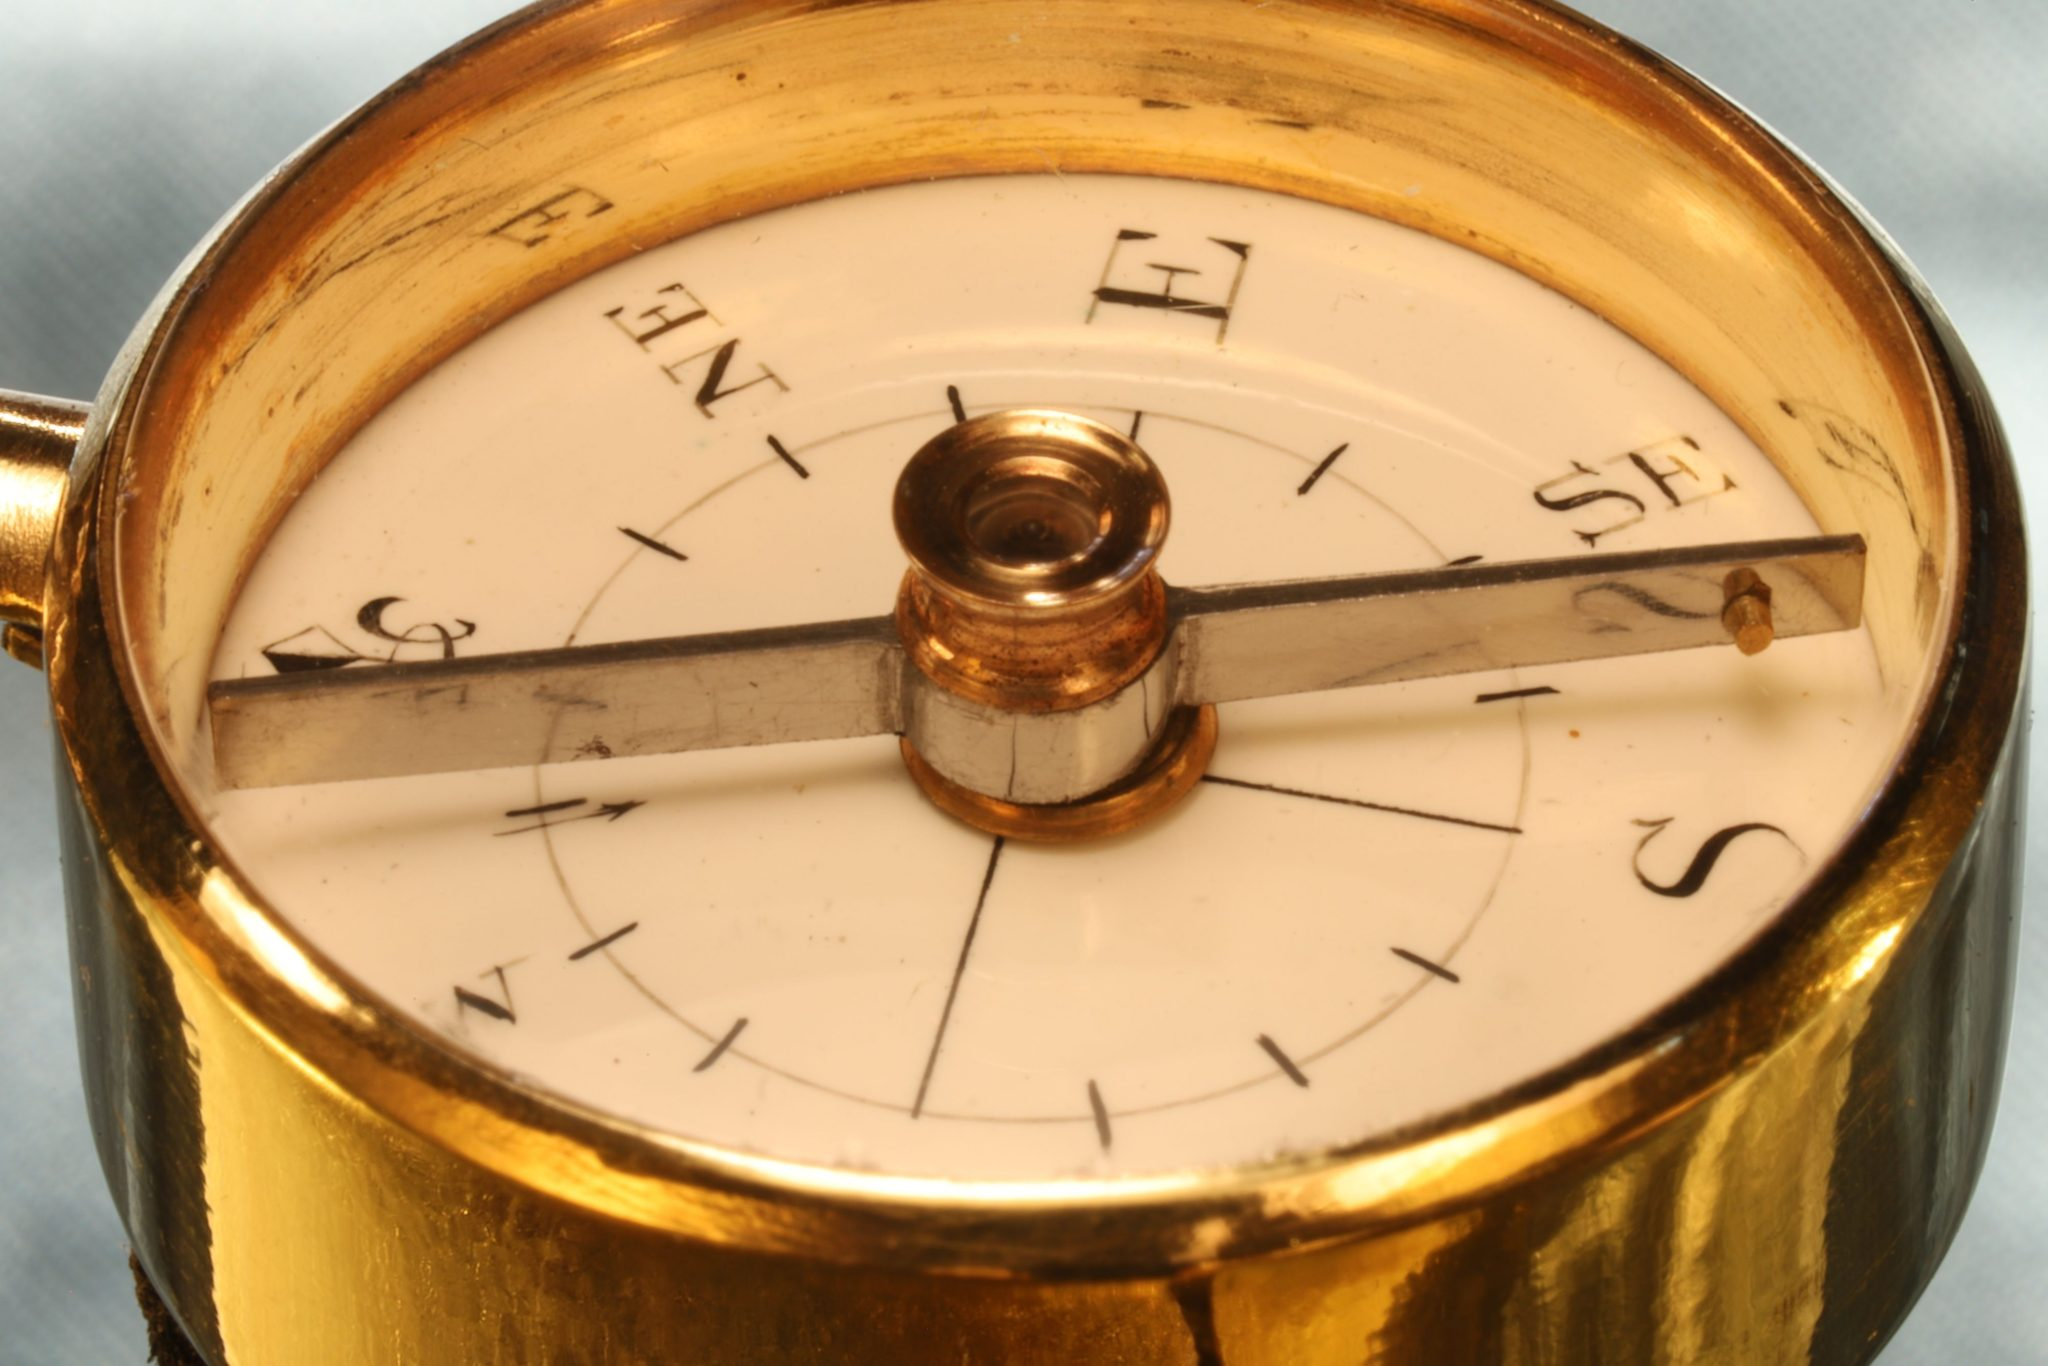 Image of Miniature Long Necked Gilt Brass Compass in Case c1800